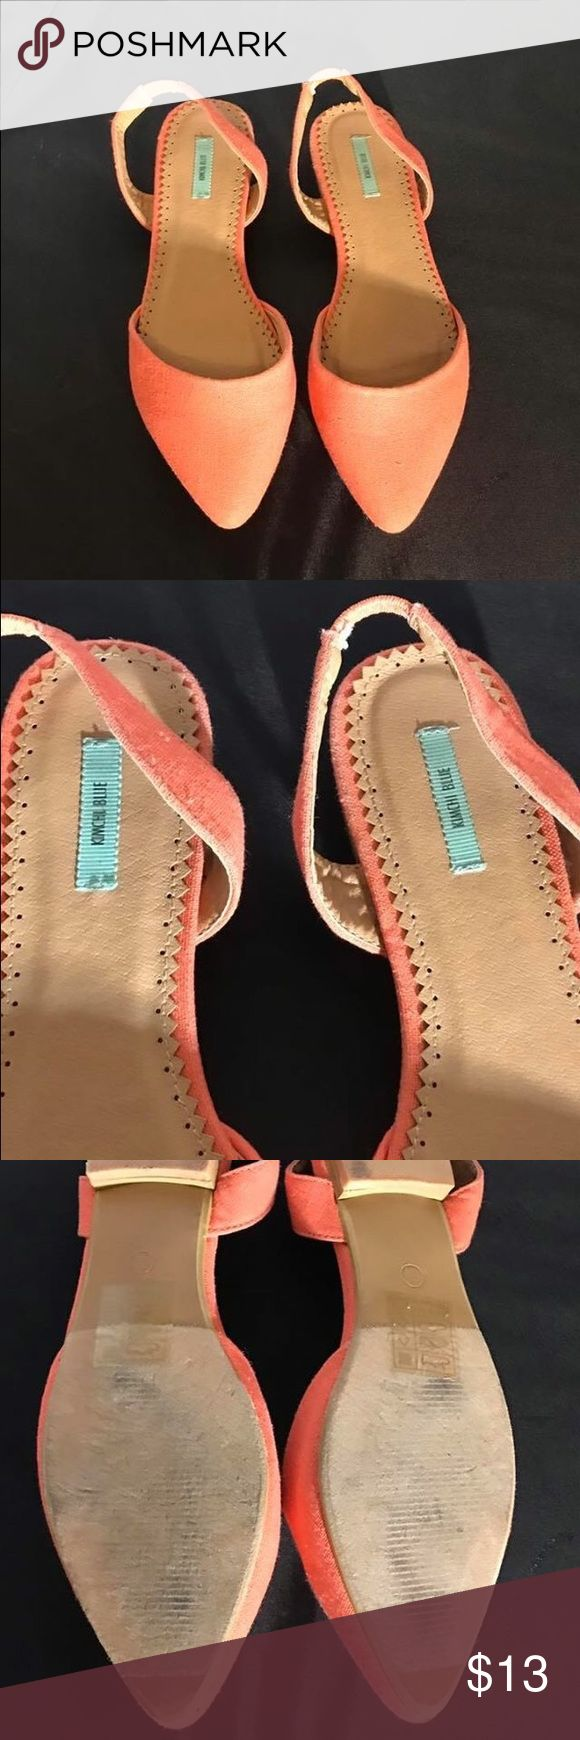 Pink coral Flats pointed canvas Canvas material pink coral color. Pointed toe, super cute for summer, size 7. Kimichi Blue brand Kimchi Blue Shoes Flats & Loafers